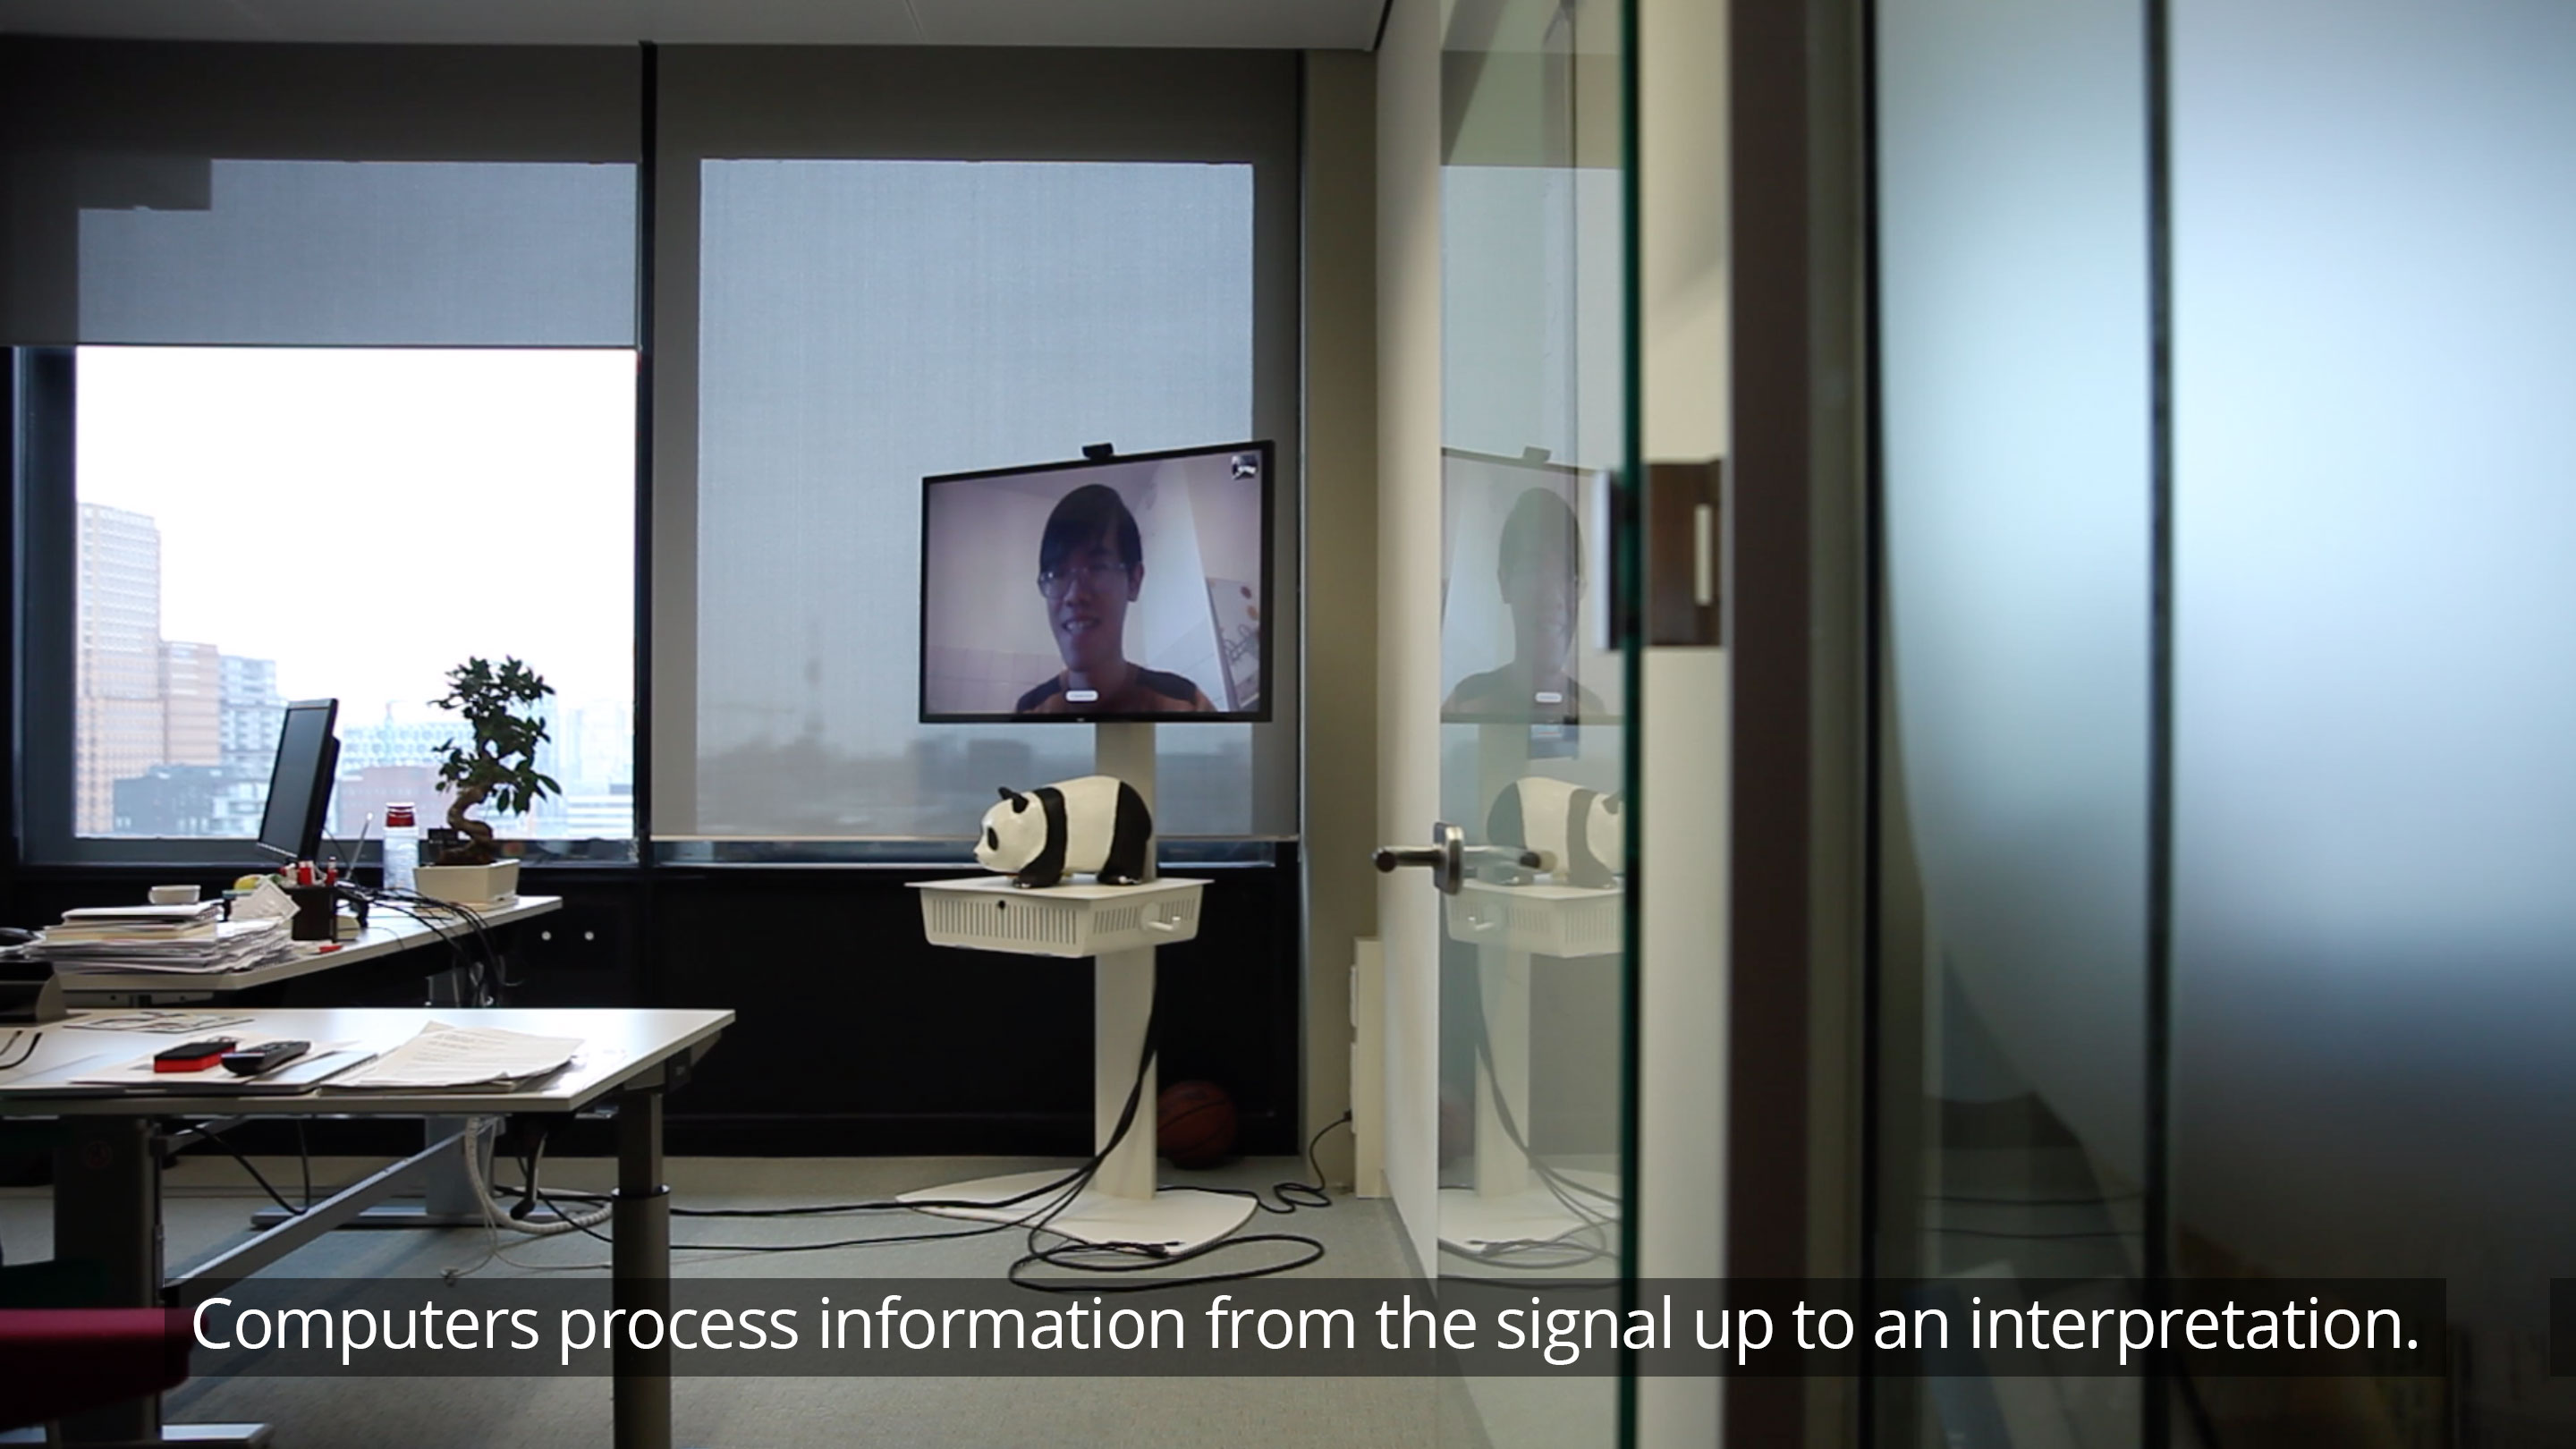 Computers process information from the signal up to an interpretation.